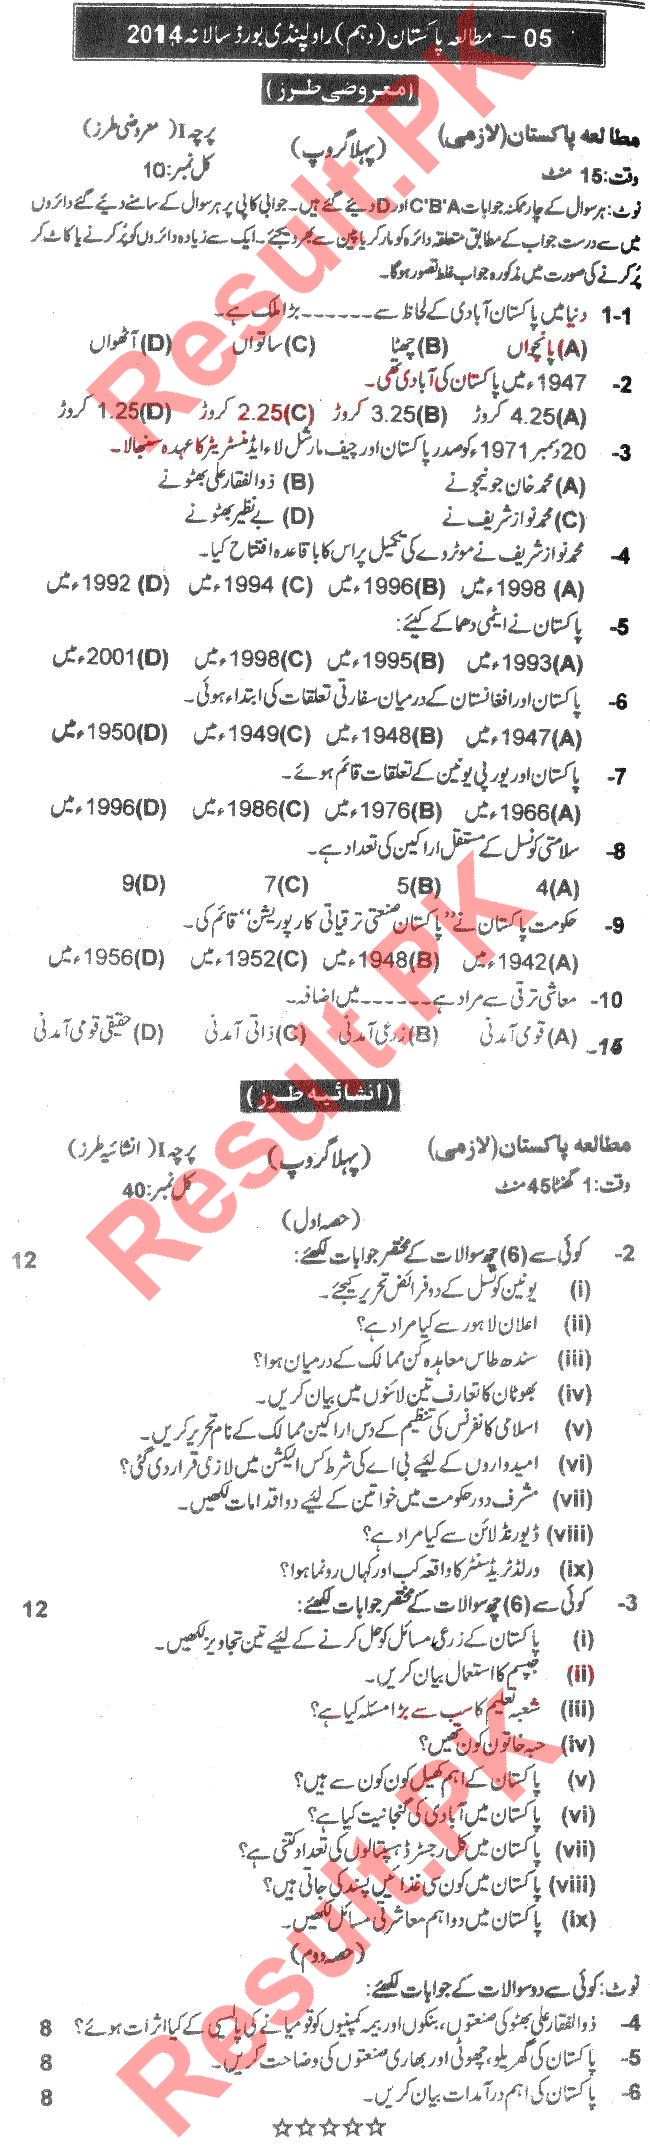 urdu essays for class 6 25 03 - mathematics text book riyazi- urdu urdu e- book for class 8, cbse essay on cinema and its effects complete essay for class 10, class essay book of urdu class whole foods they are.